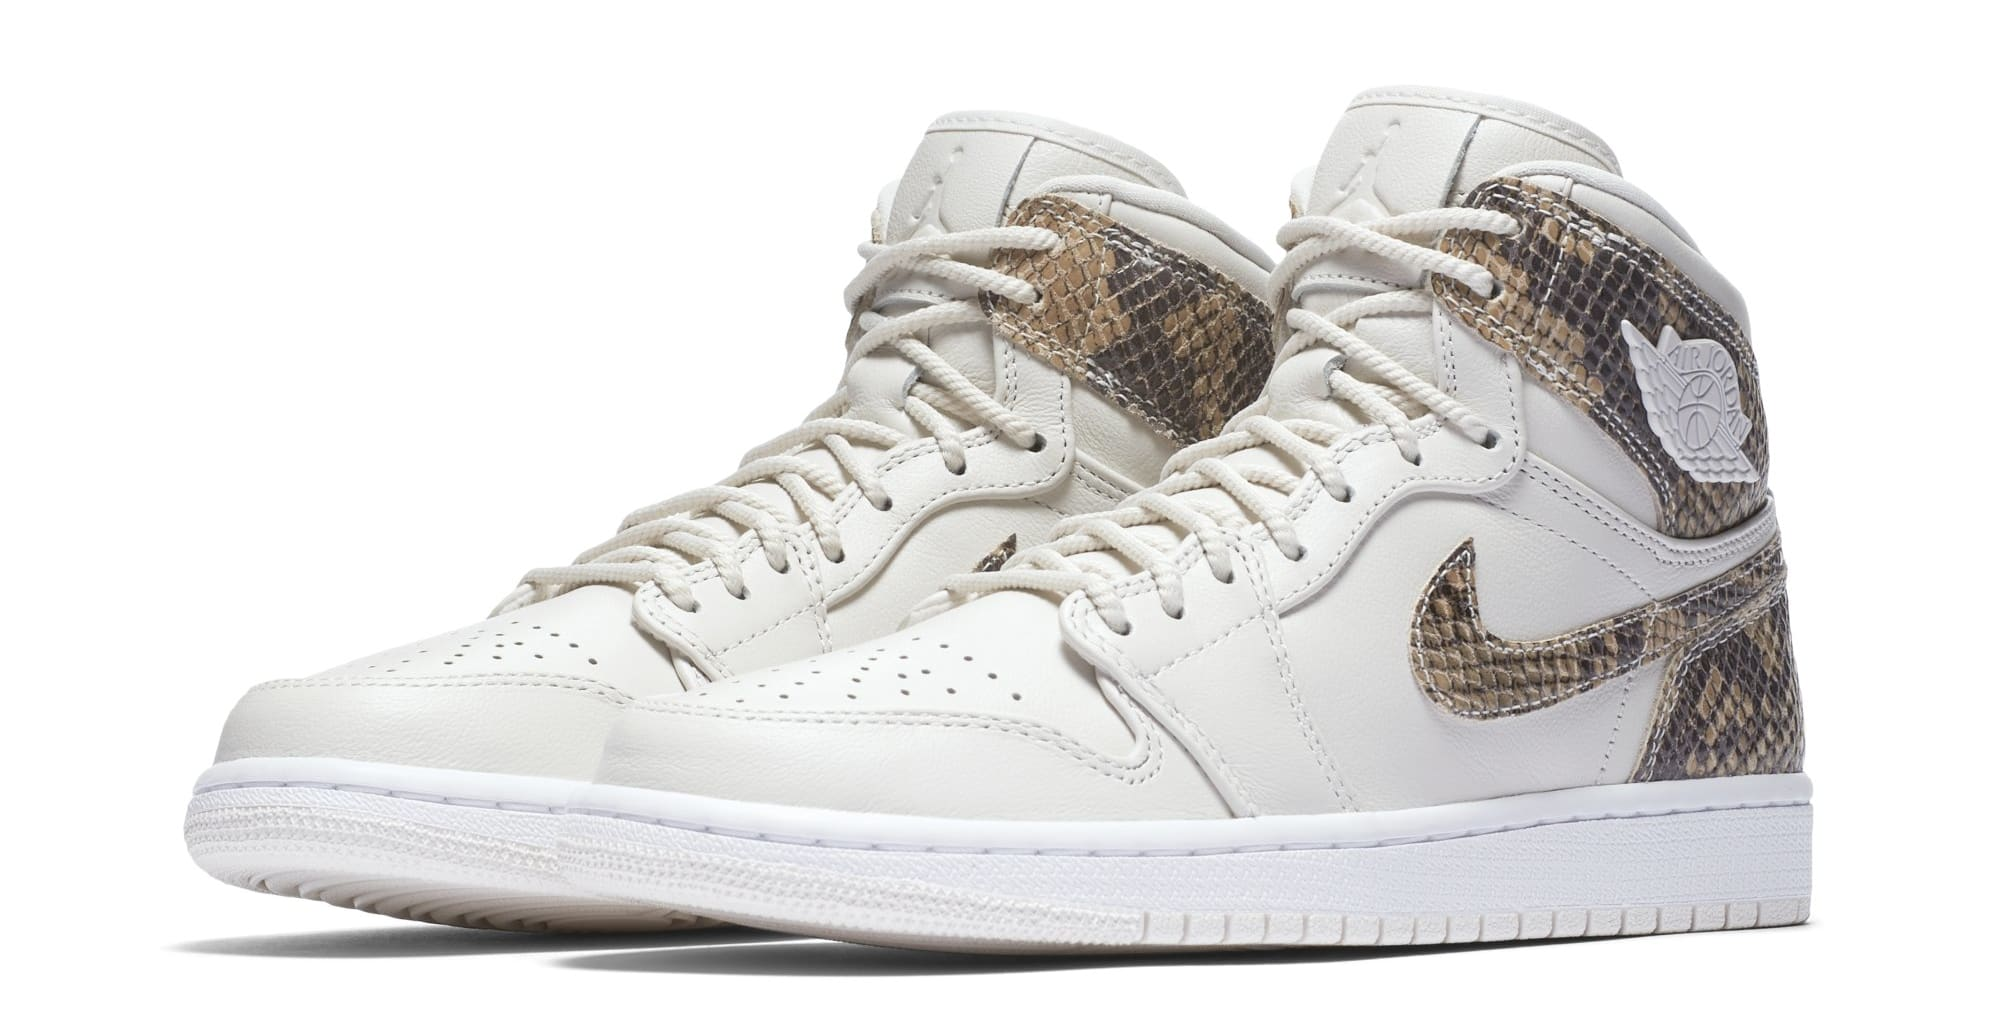 Air Jordan 1 Retro High Premium Women's Snake 'Phantom/White' AH7389-004 (Pair)